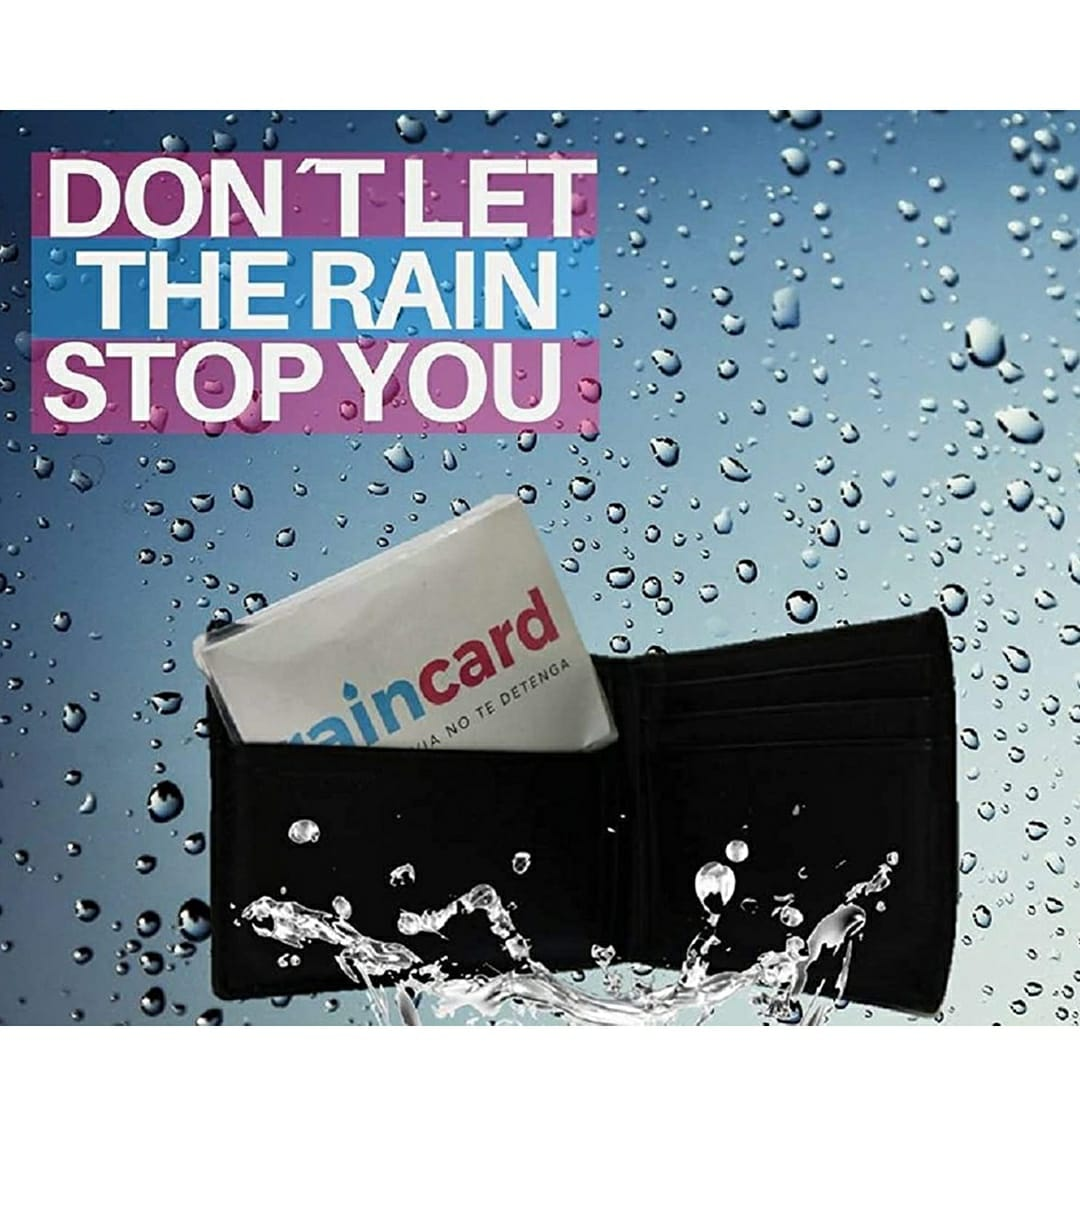 Pack 6, Raincard Unisex Plastic The First Credit Card Sized Raincoat (Multicolour, Free Size)